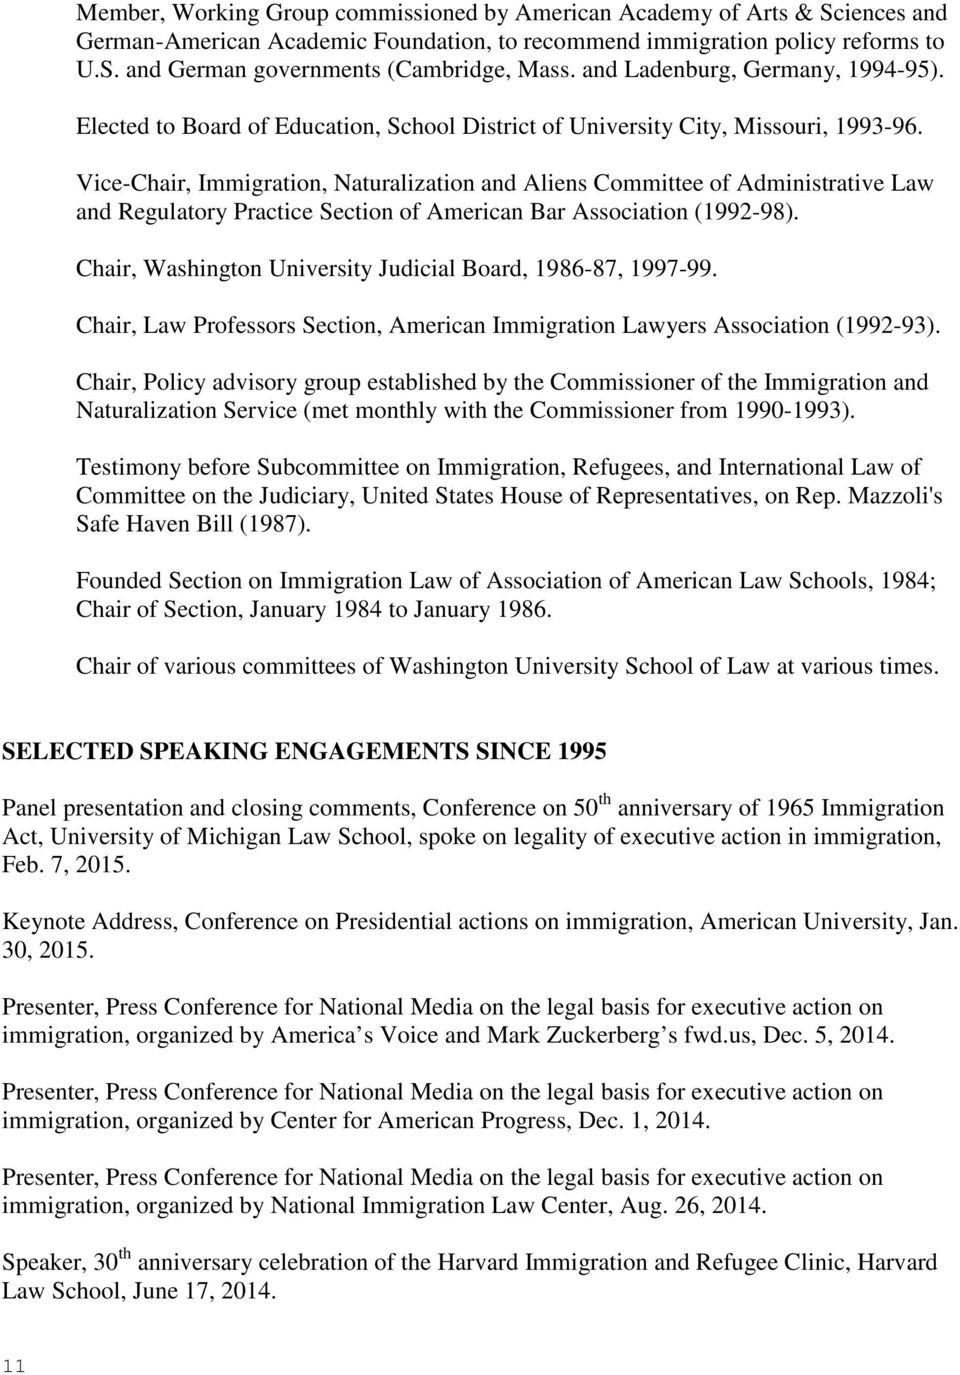 Vice-Chair, Immigration, Naturalization and Aliens Committee of Administrative Law and Regulatory Practice Section of American Bar Association (1992-98).